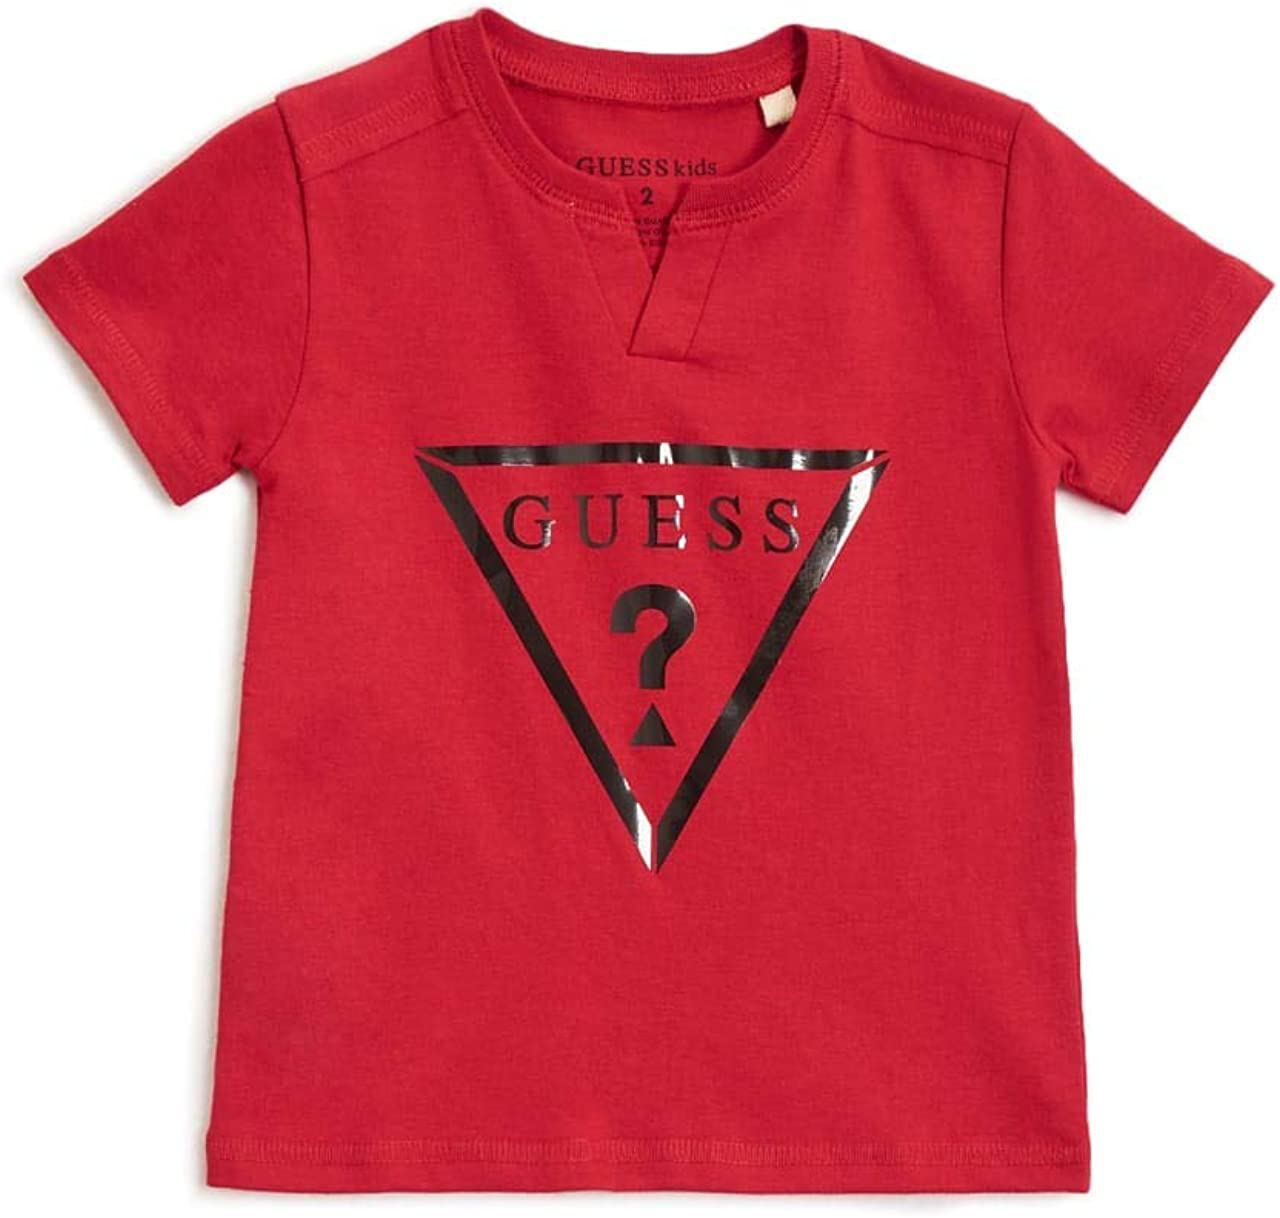 GUESS Factory Kids Boys Barrington Triangle Logo Short Sleeve Tee 2-6